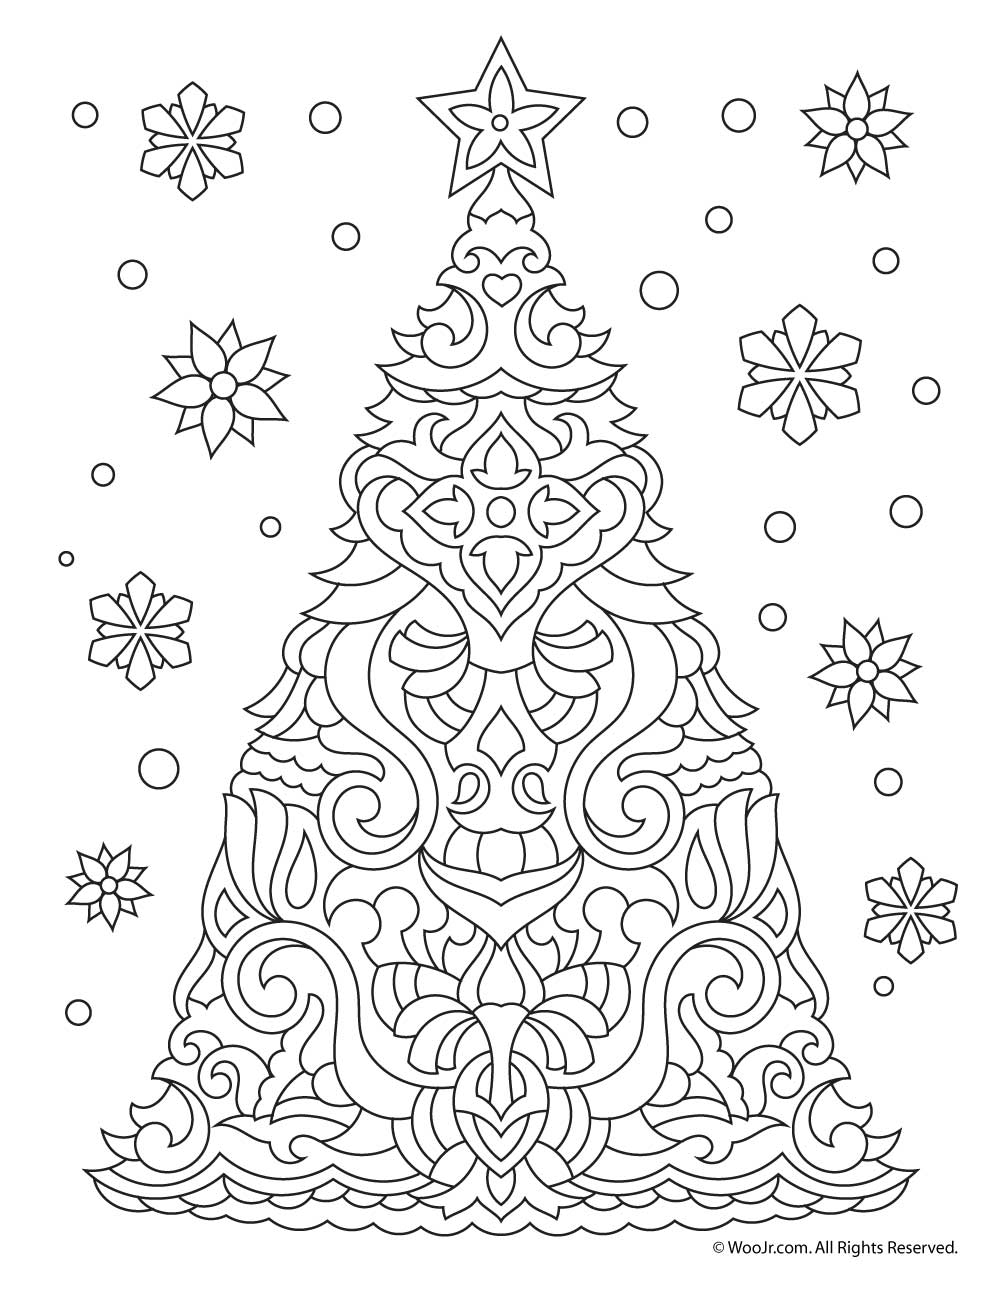 Christmas Tree Adult Coloring Page | Woo! Jr. Kids Activities | christmas coloring sheets for adults